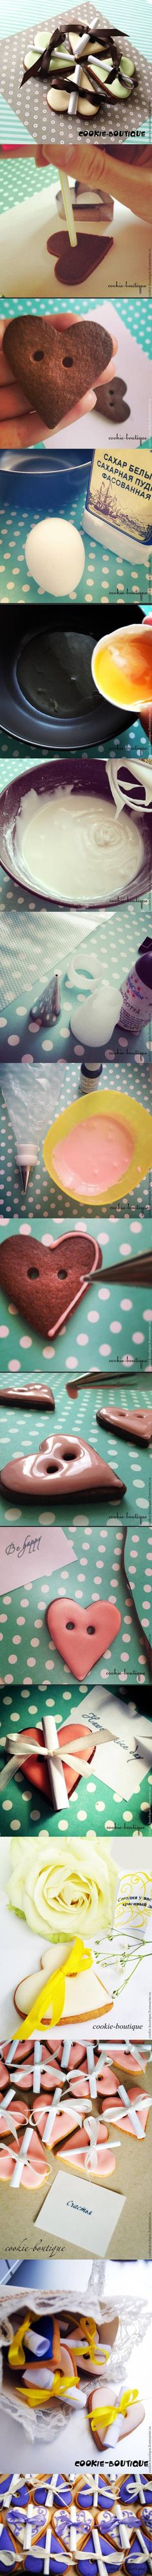 DIY Heart Cookie Messages